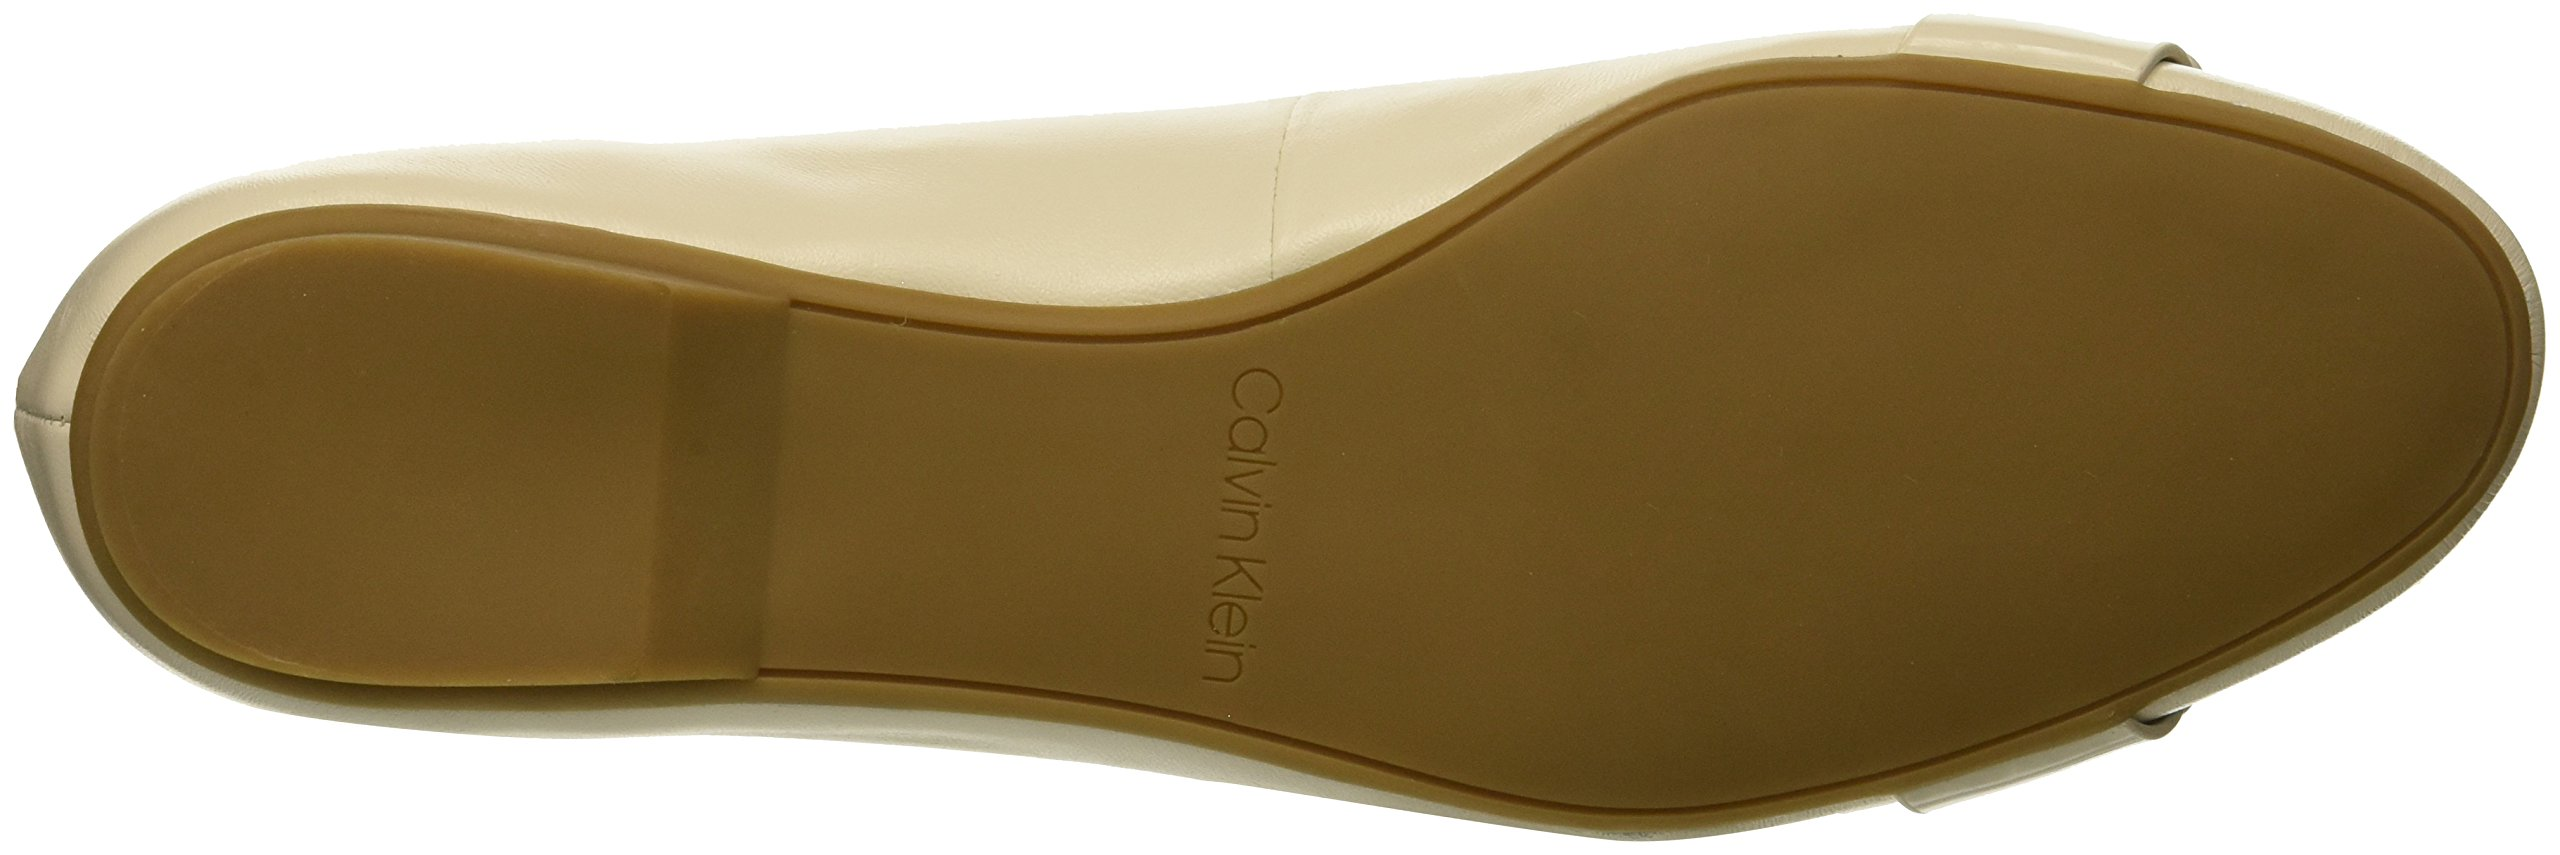 Calvin-Klein-Women-039-s-Oneta-Ballet-Flat-Black-5-M-Choose-SZ-color thumbnail 21